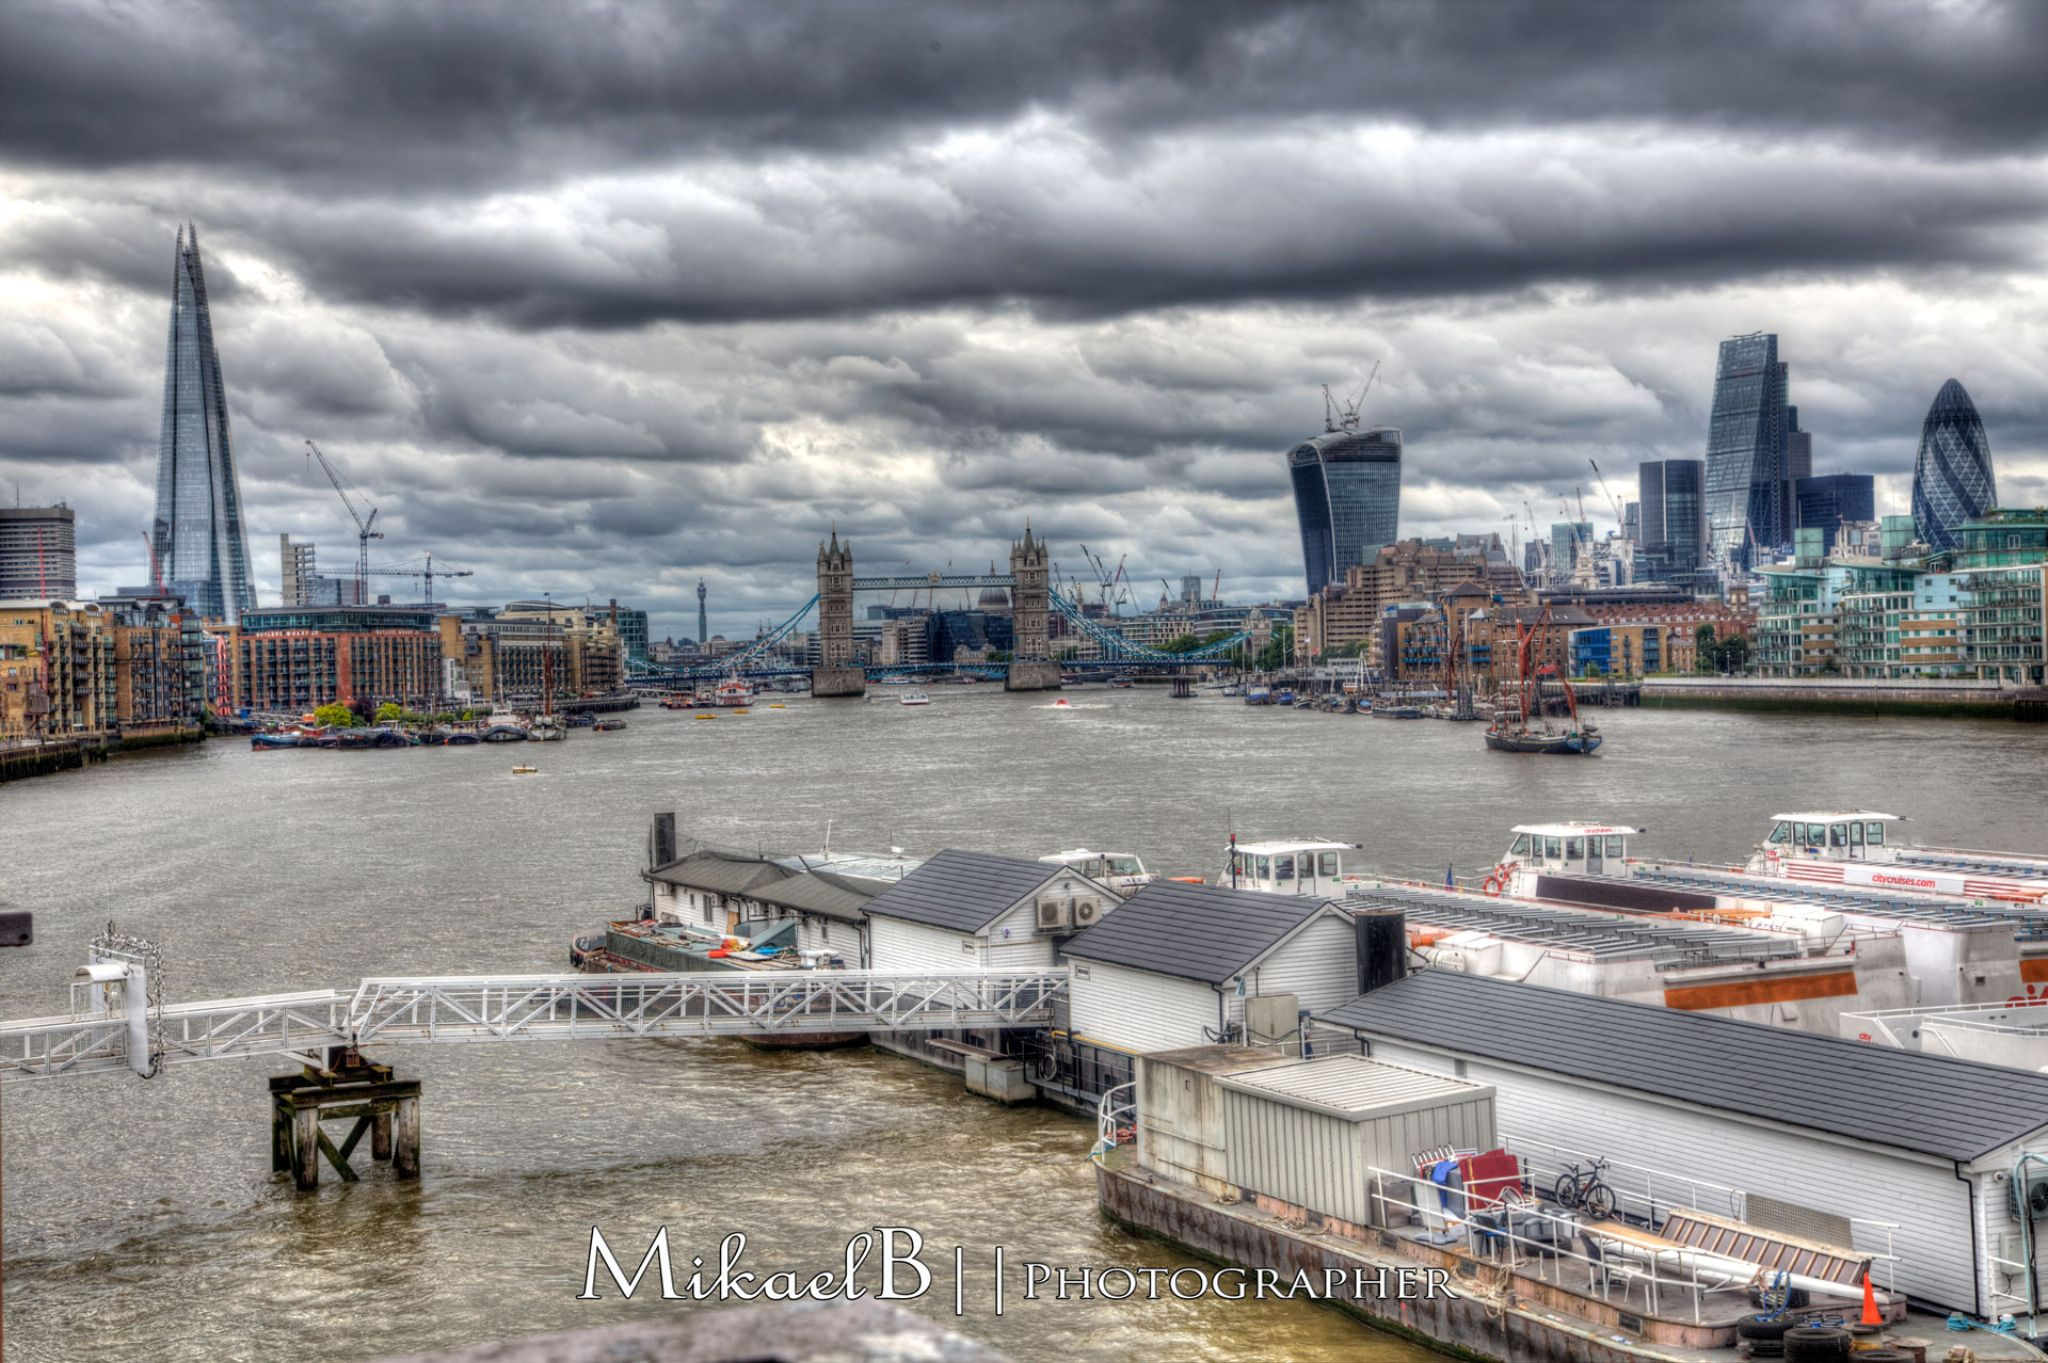 The Thames by Mikaelb